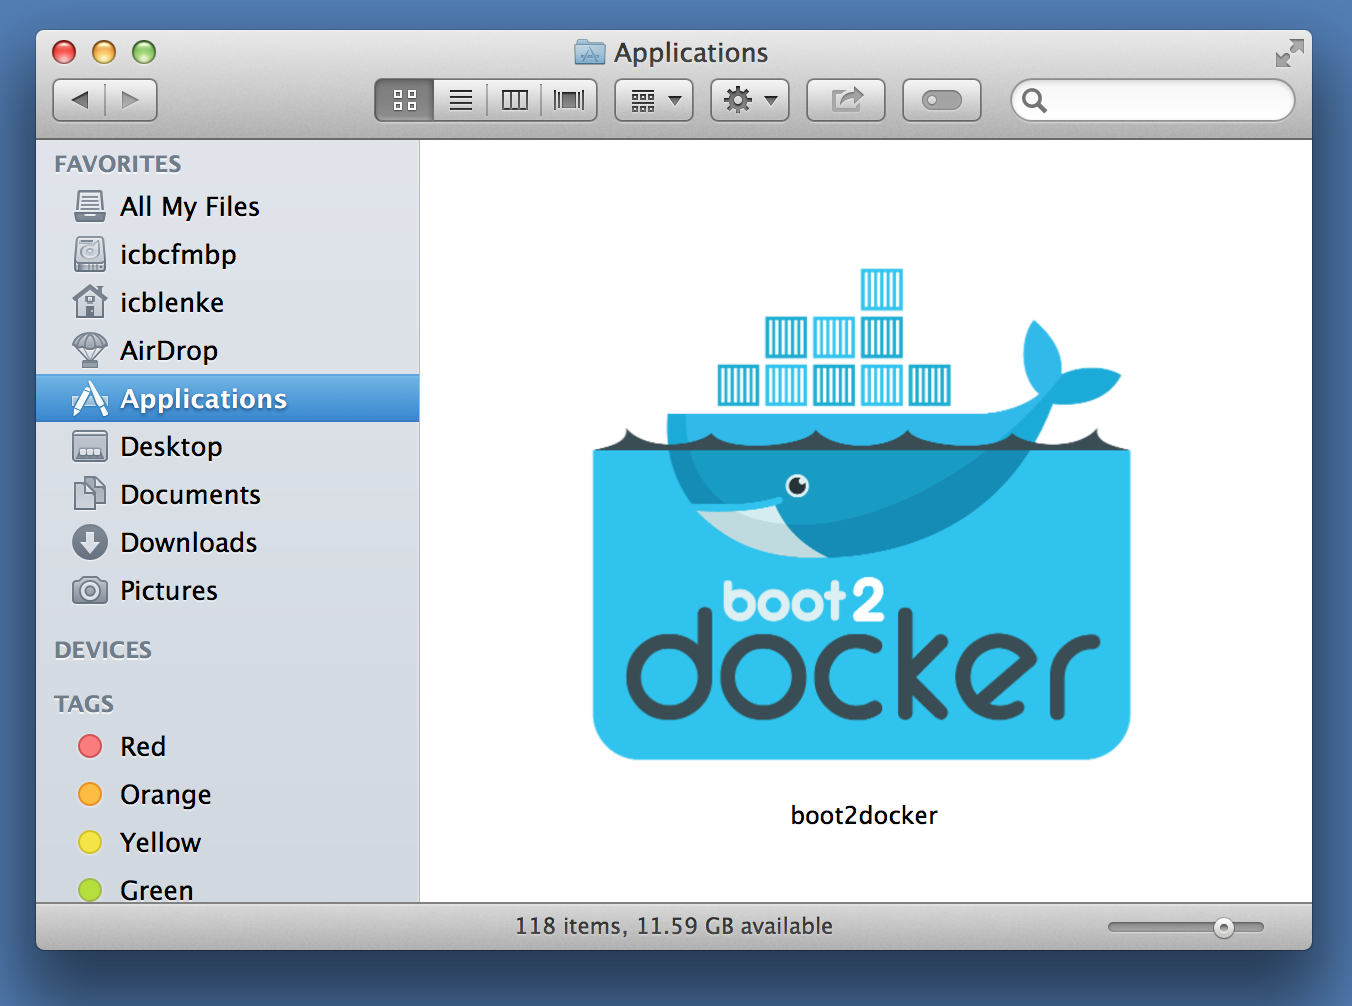 Boot2docker app is in Applications